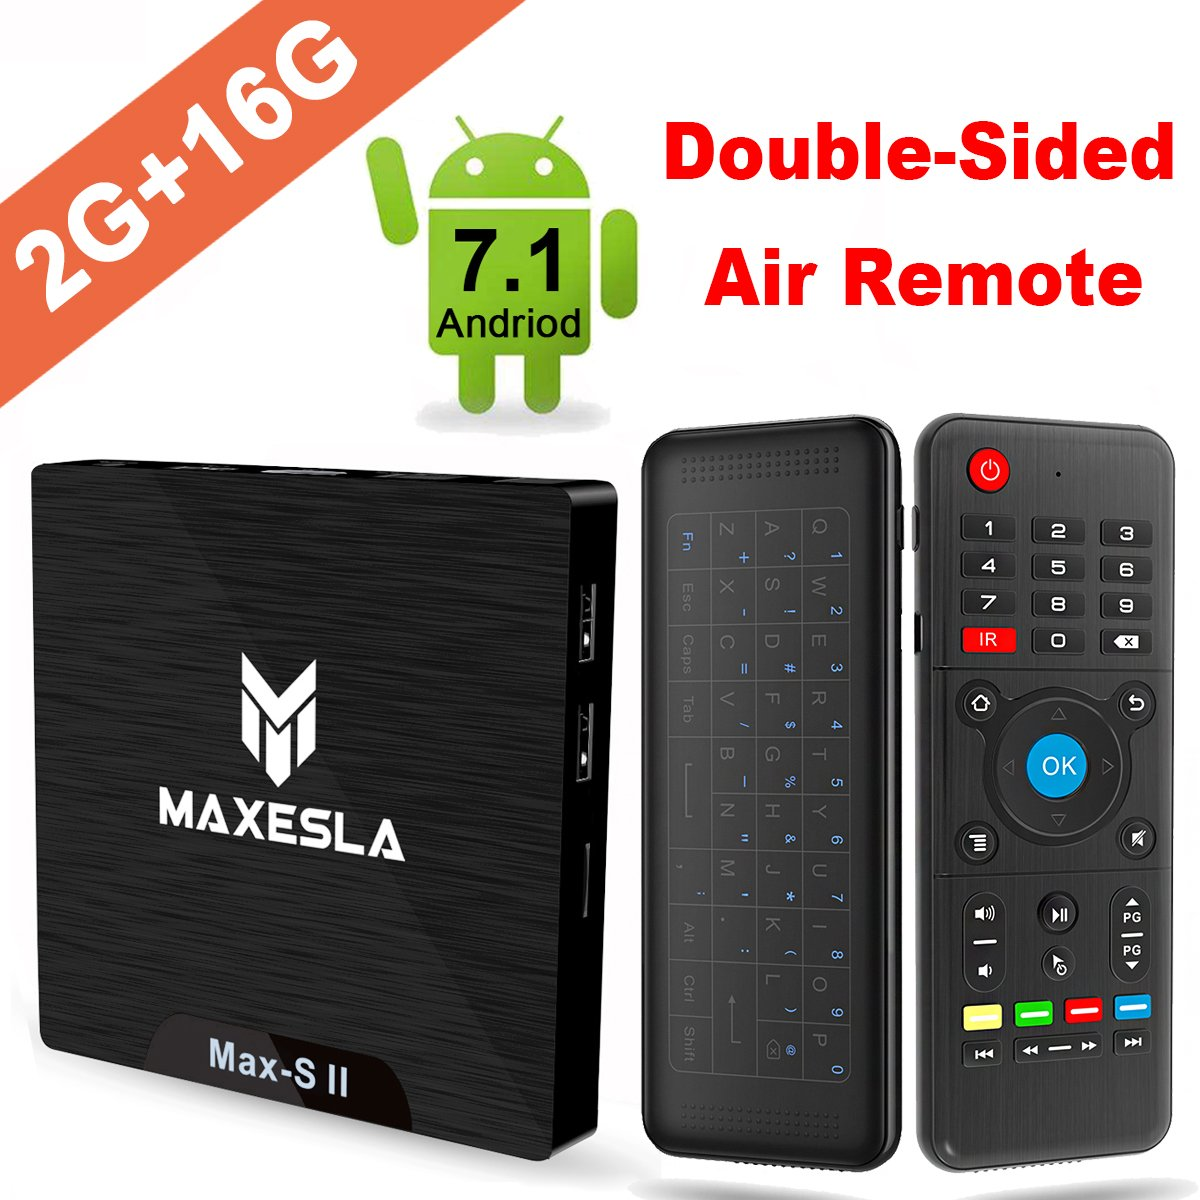 Smart TV BOX Android 7.1 - Maxesla MAX-S II Mini TV Box de 2GB RAM +